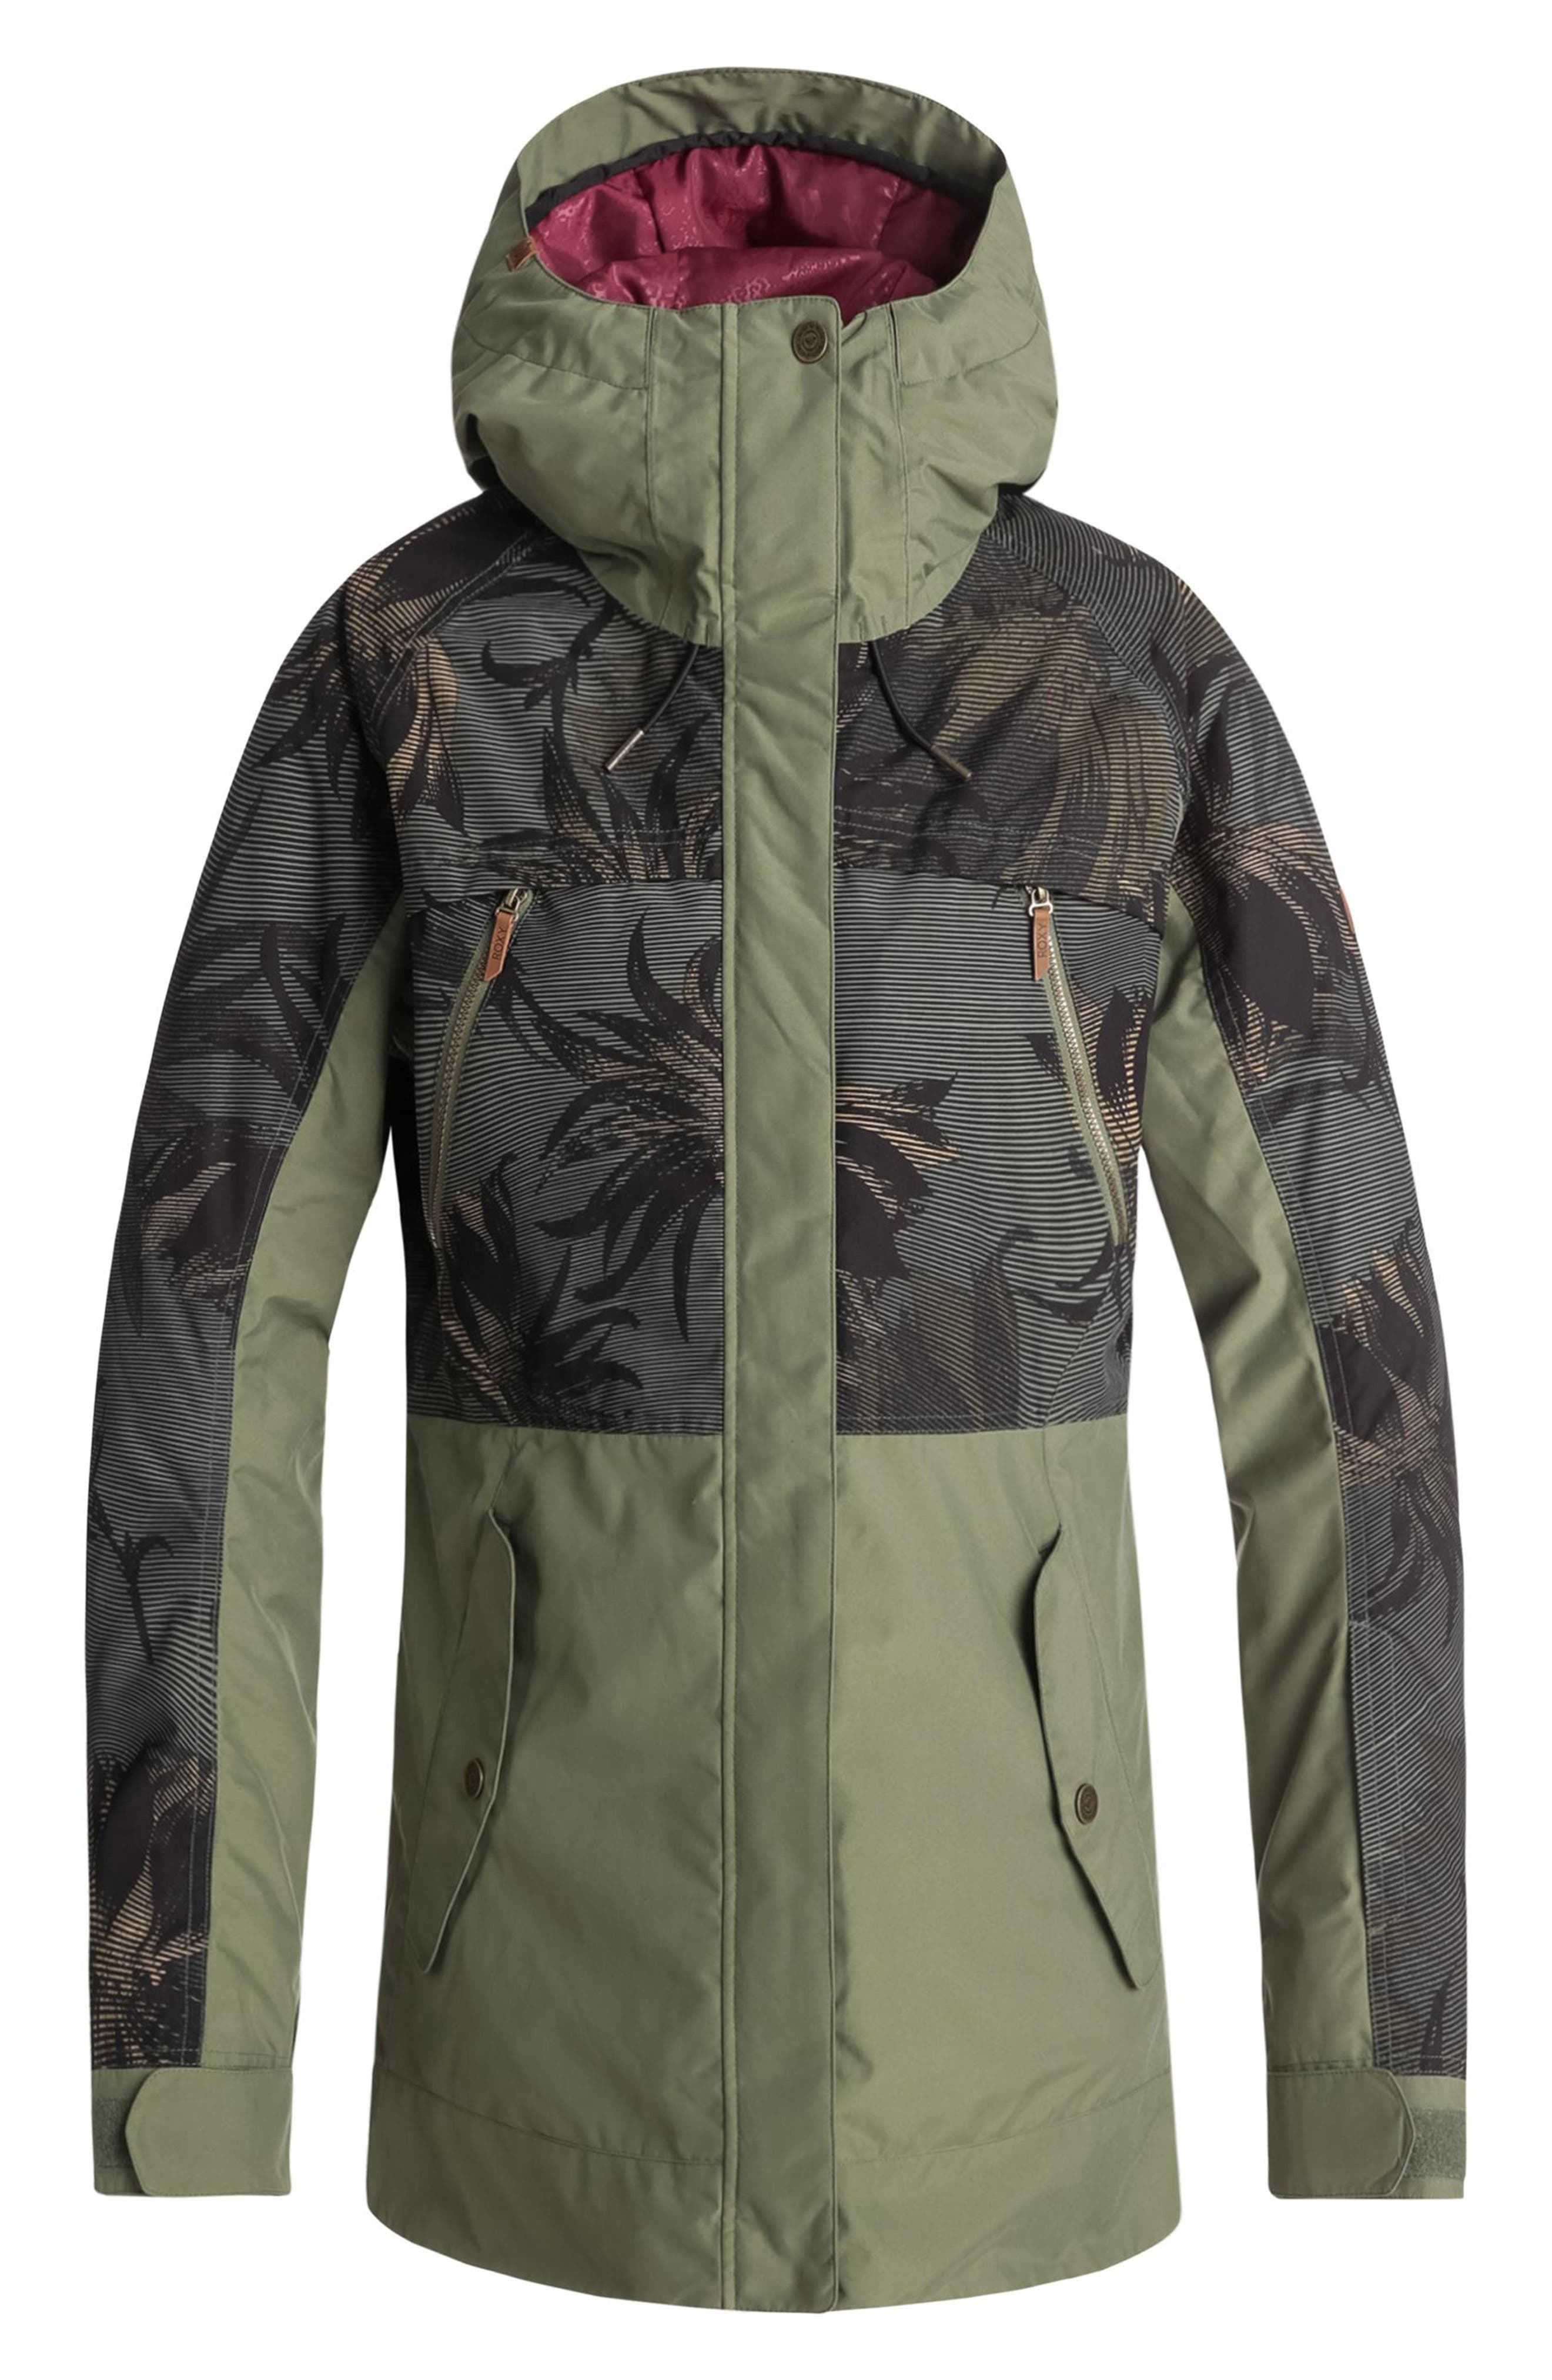 Waterproof DryFlight<sup>®</sup> Thinsulate<sup>®</sup> Insulated Snow Jacket,                             Main thumbnail 1, color,                             FOUR LEAF CLOVER-SWELL FLOWERS